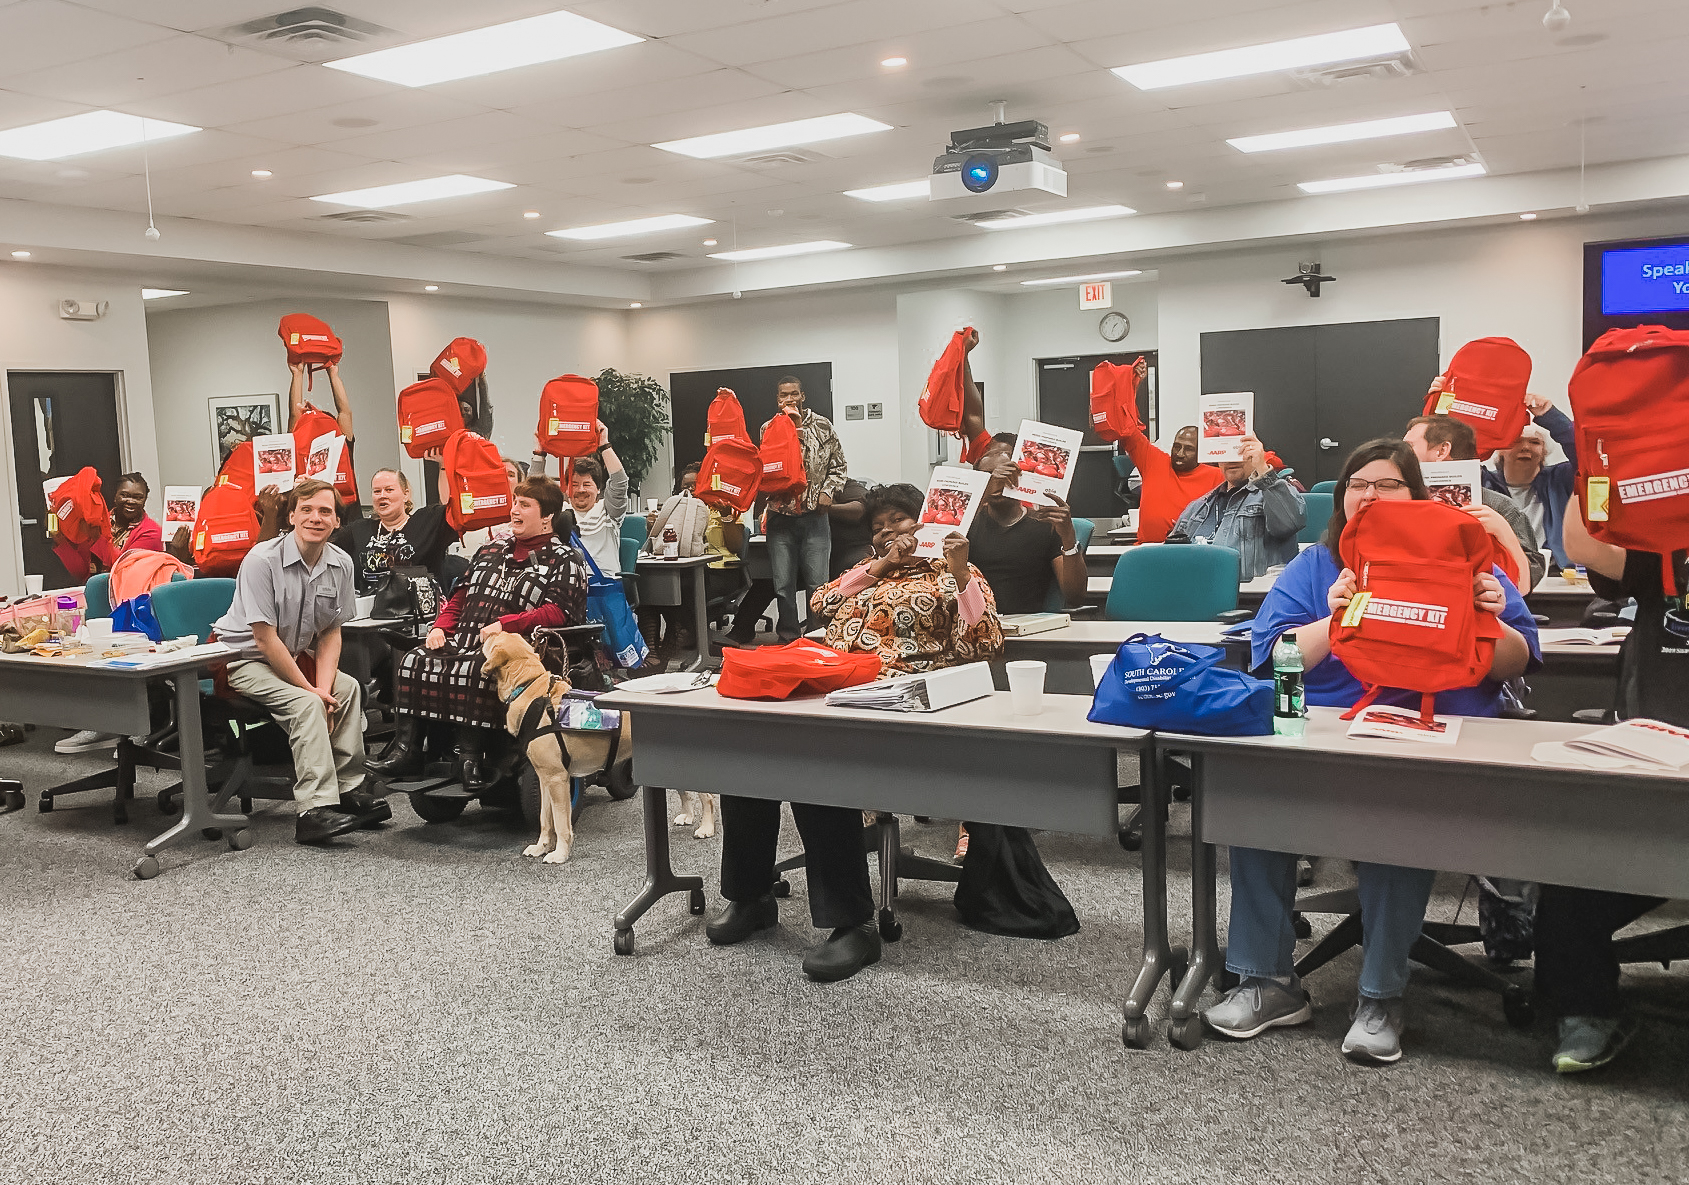 A group of individuals with disabilities sitting at tables, holding red emergency kit backpacks and smiling.